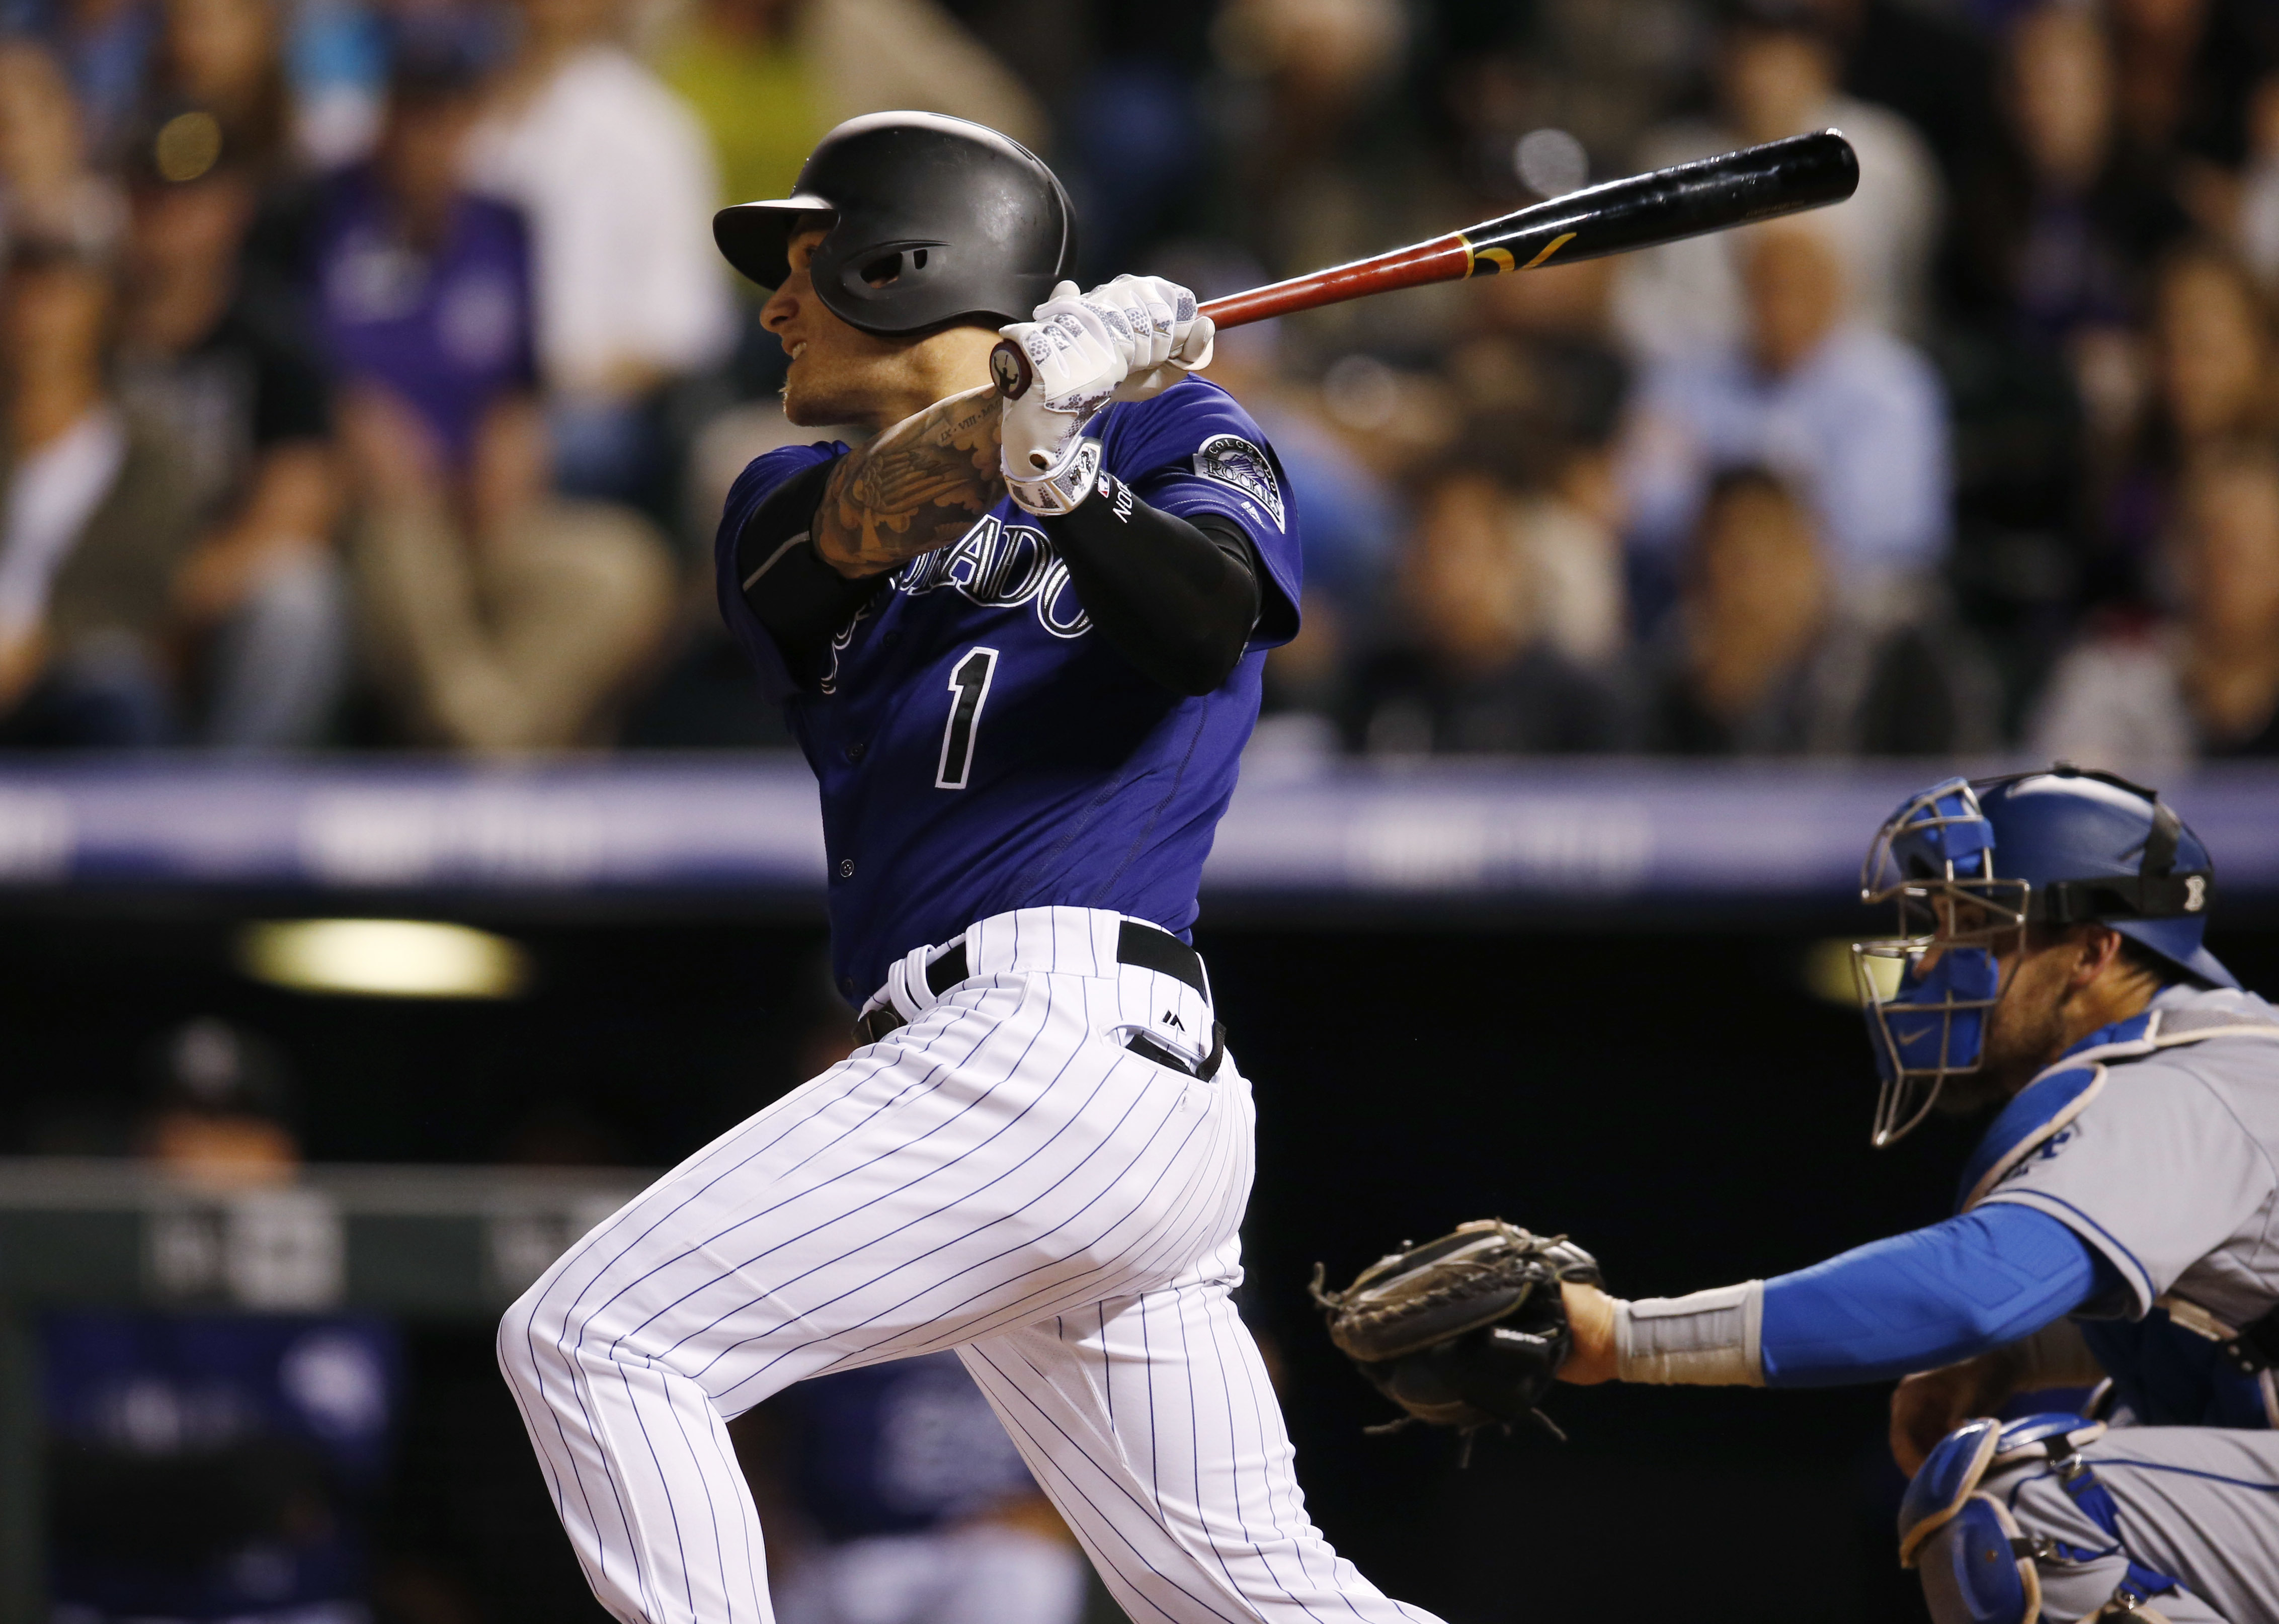 Colorado Rockies' Brandon Barnes watches his two-run triple off Los Angeles Dodgers relief pitcher Chris Hatcher during the eighth inning of a baseball game Friday, April 22, 2016, in Denver. (AP Photo/David Zalubowski)